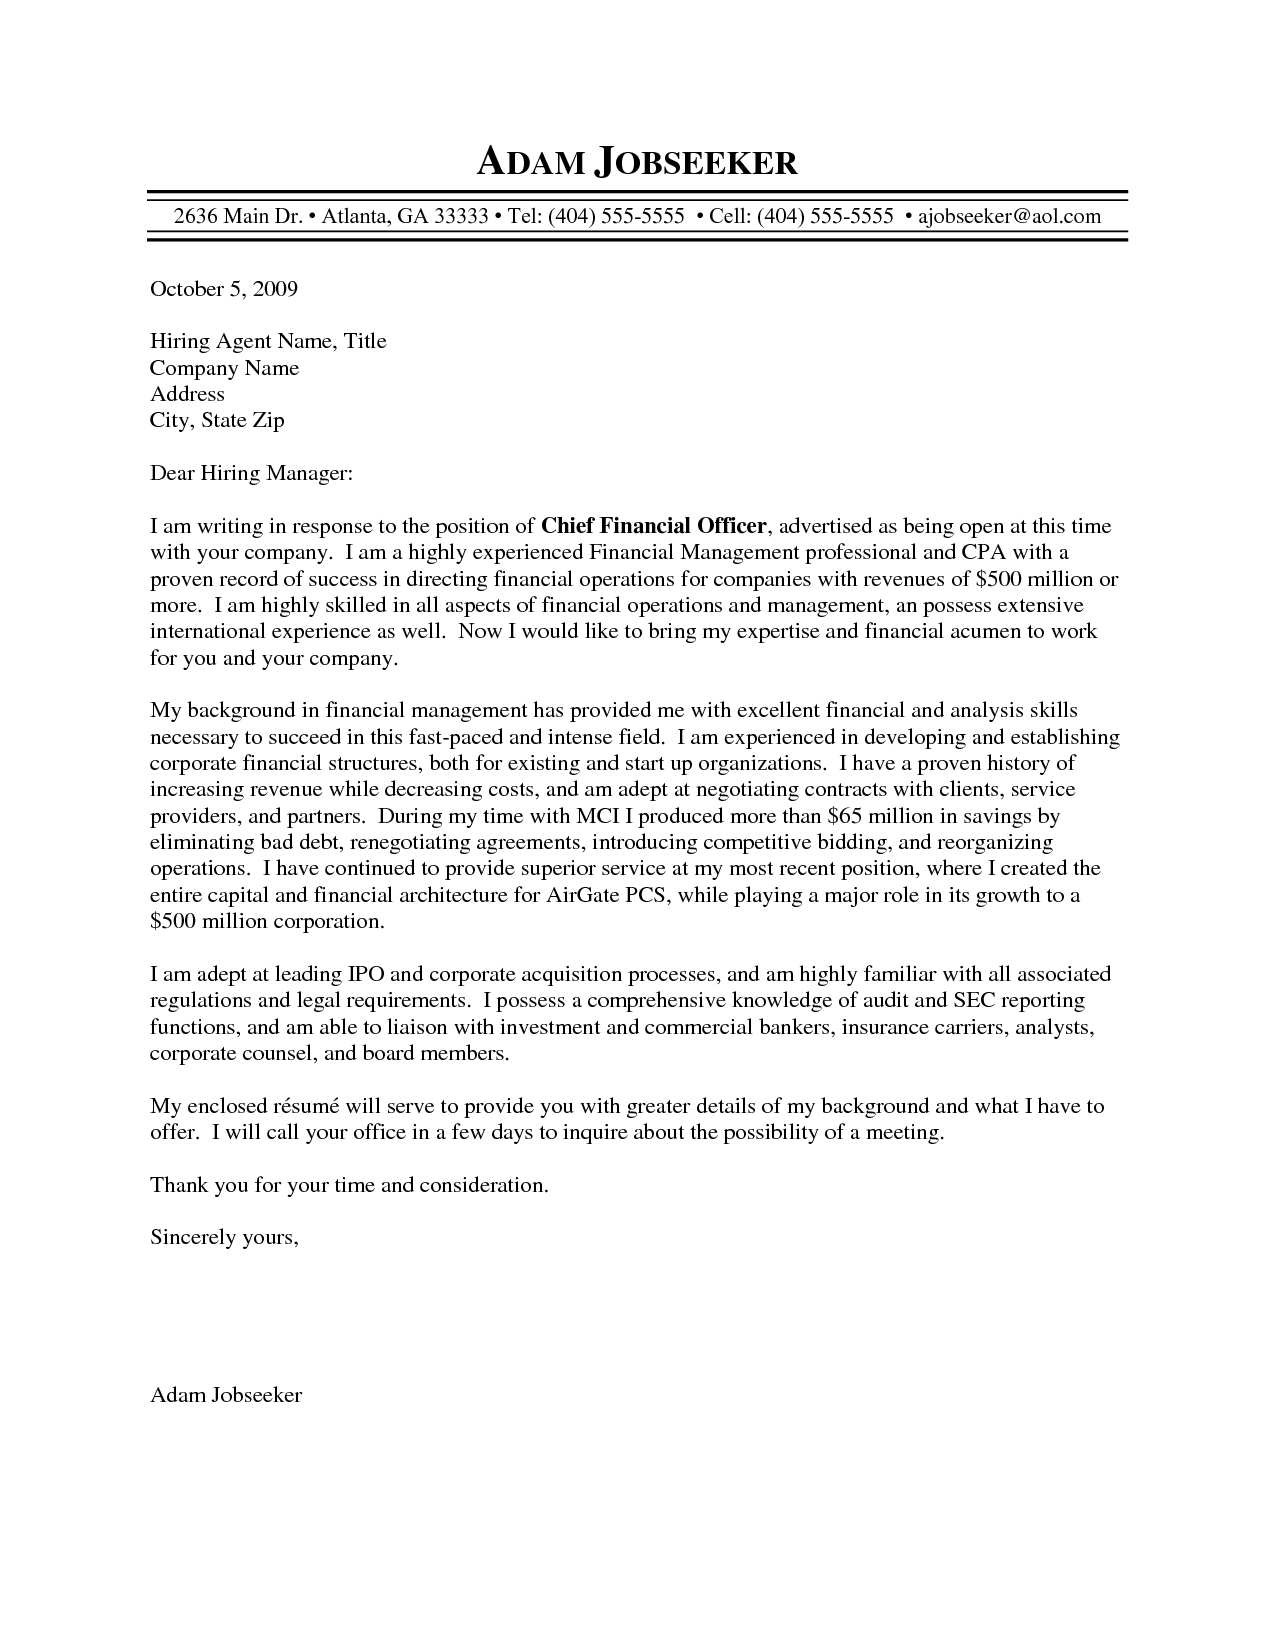 Cfo Cover Letter Template - Bunch Ideas Chief Financial Ficer Letter Re Mendation About